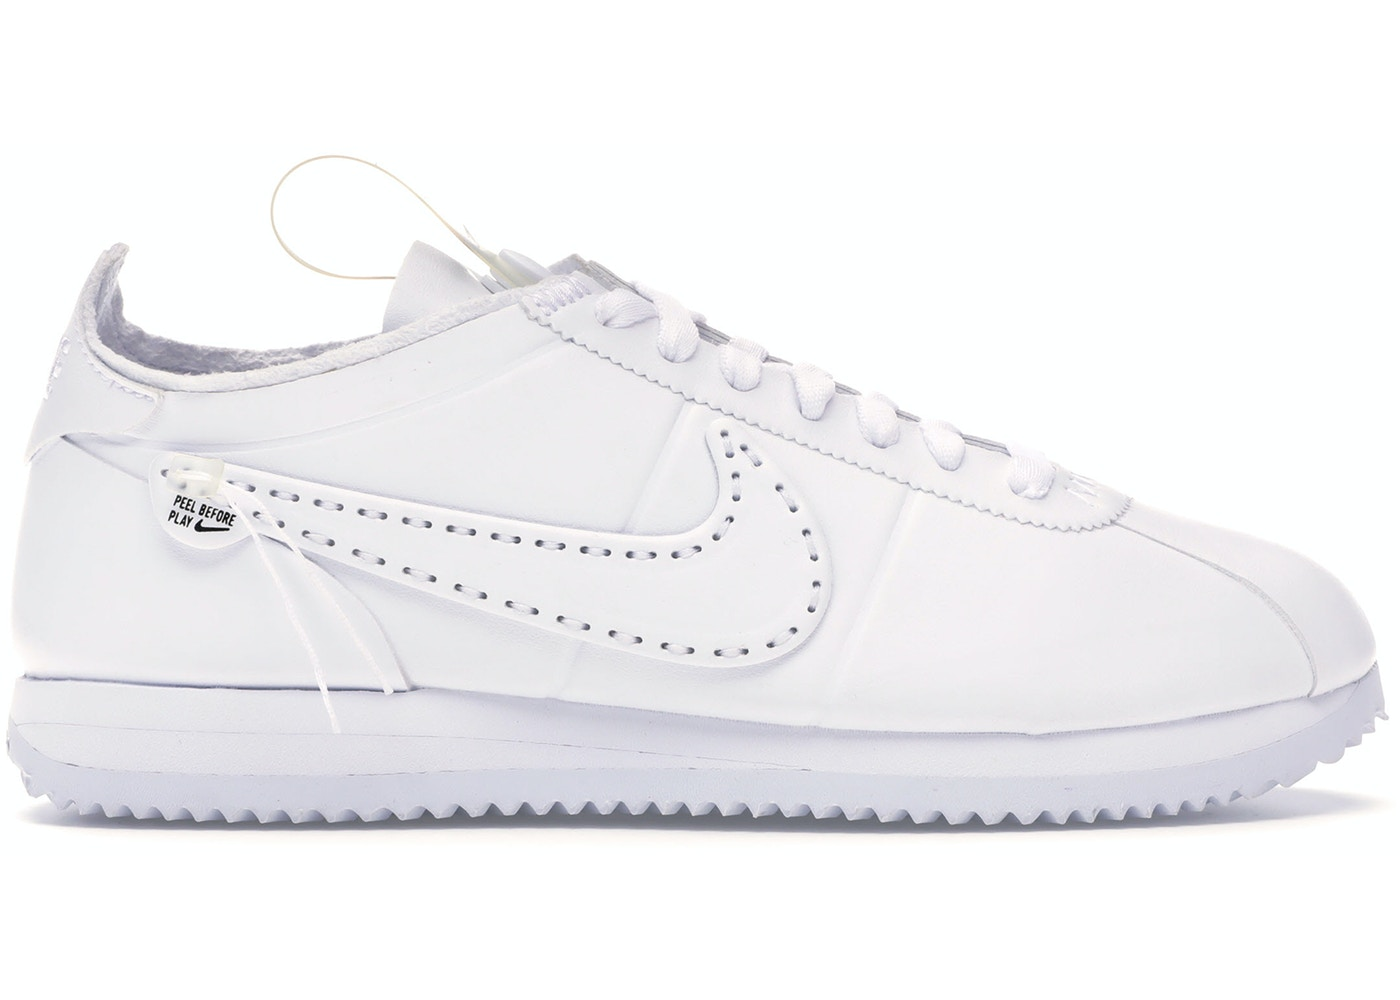 reputable site d5016 729ca Nike Cortez Noise Cancelling Pack Maria Sharapova